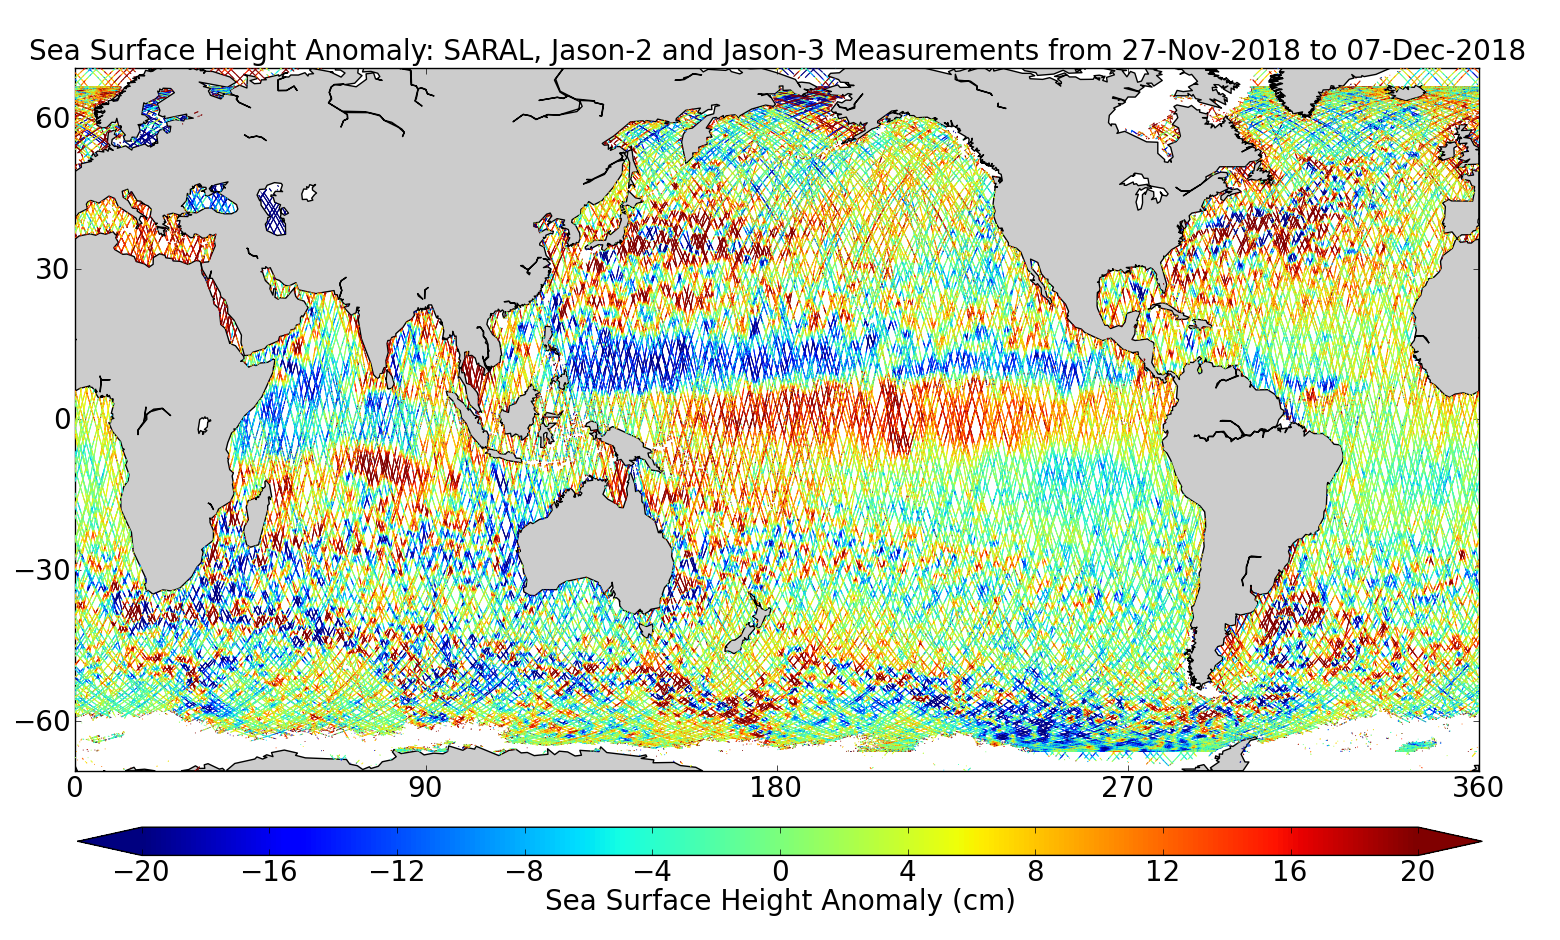 Sea Surface Height Anomaly: SARAL, Jason-2 and Jason-3 Measurements from 27-Nov-2018 to 07-Dec-2018